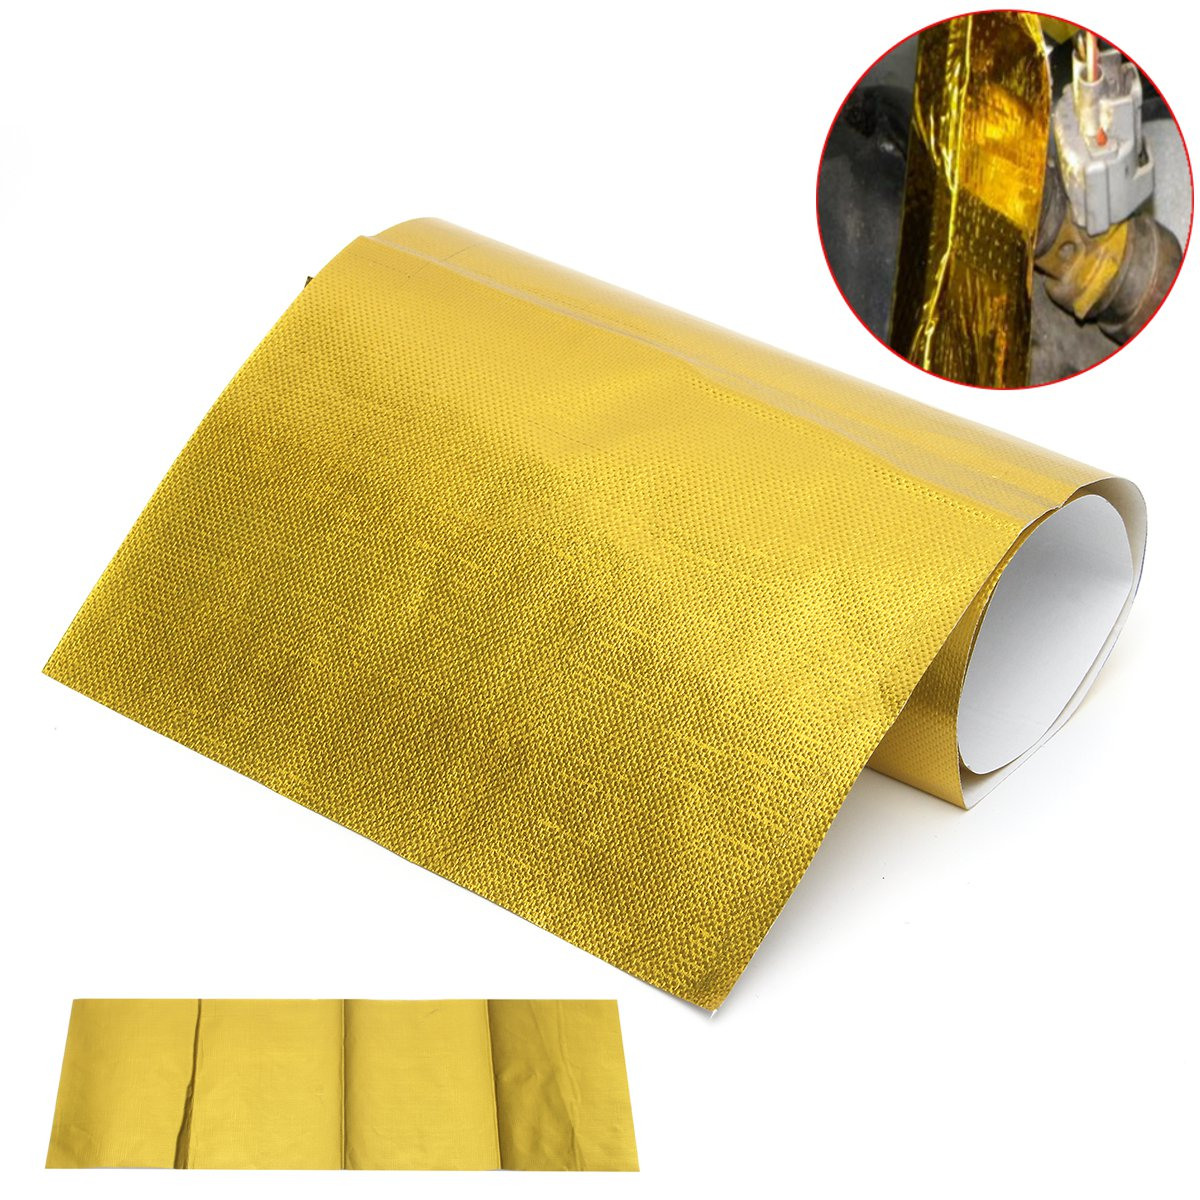 20x60cm Self Adhesive Reflective Gold High Temperature Exhaust Heat Shield Wrap Tape Insulation Stickers Car Styling